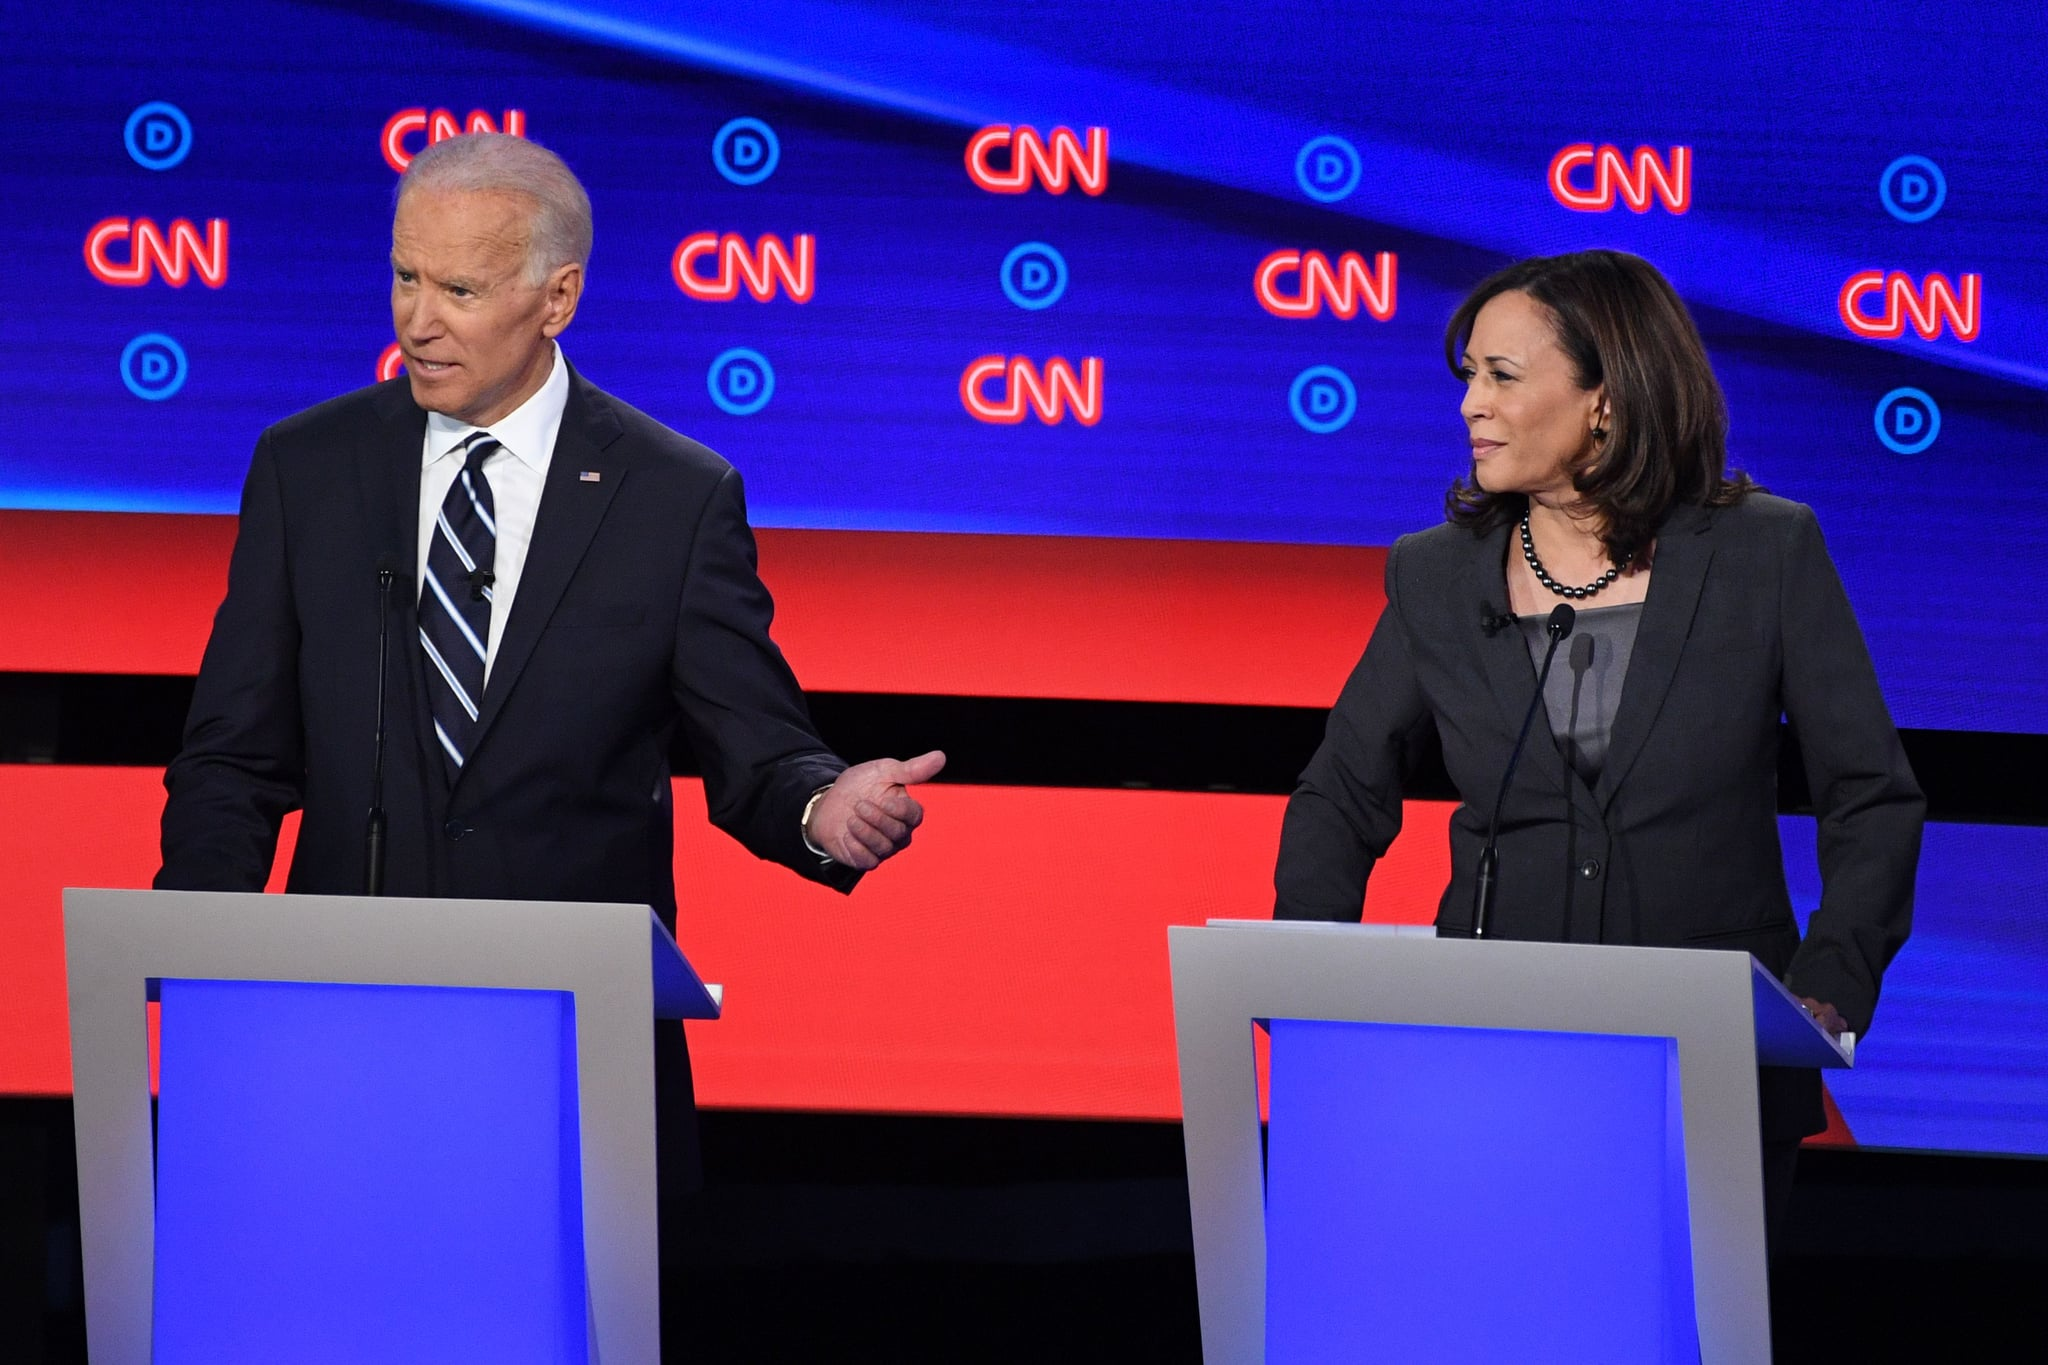 Democratic presidential hopeful US Senator from California Kamala Harris (R) looks on as Former Vice President Joe Biden speaks during the second round of the second Democratic primary debate of the 2020 presidential campaign season hosted by CNN at the Fox Theatre in Detroit, Michigan on July 31, 2019. (Photo by Jim WATSON / AFP) (Photo by JIM WATSON/AFP via Getty Images)